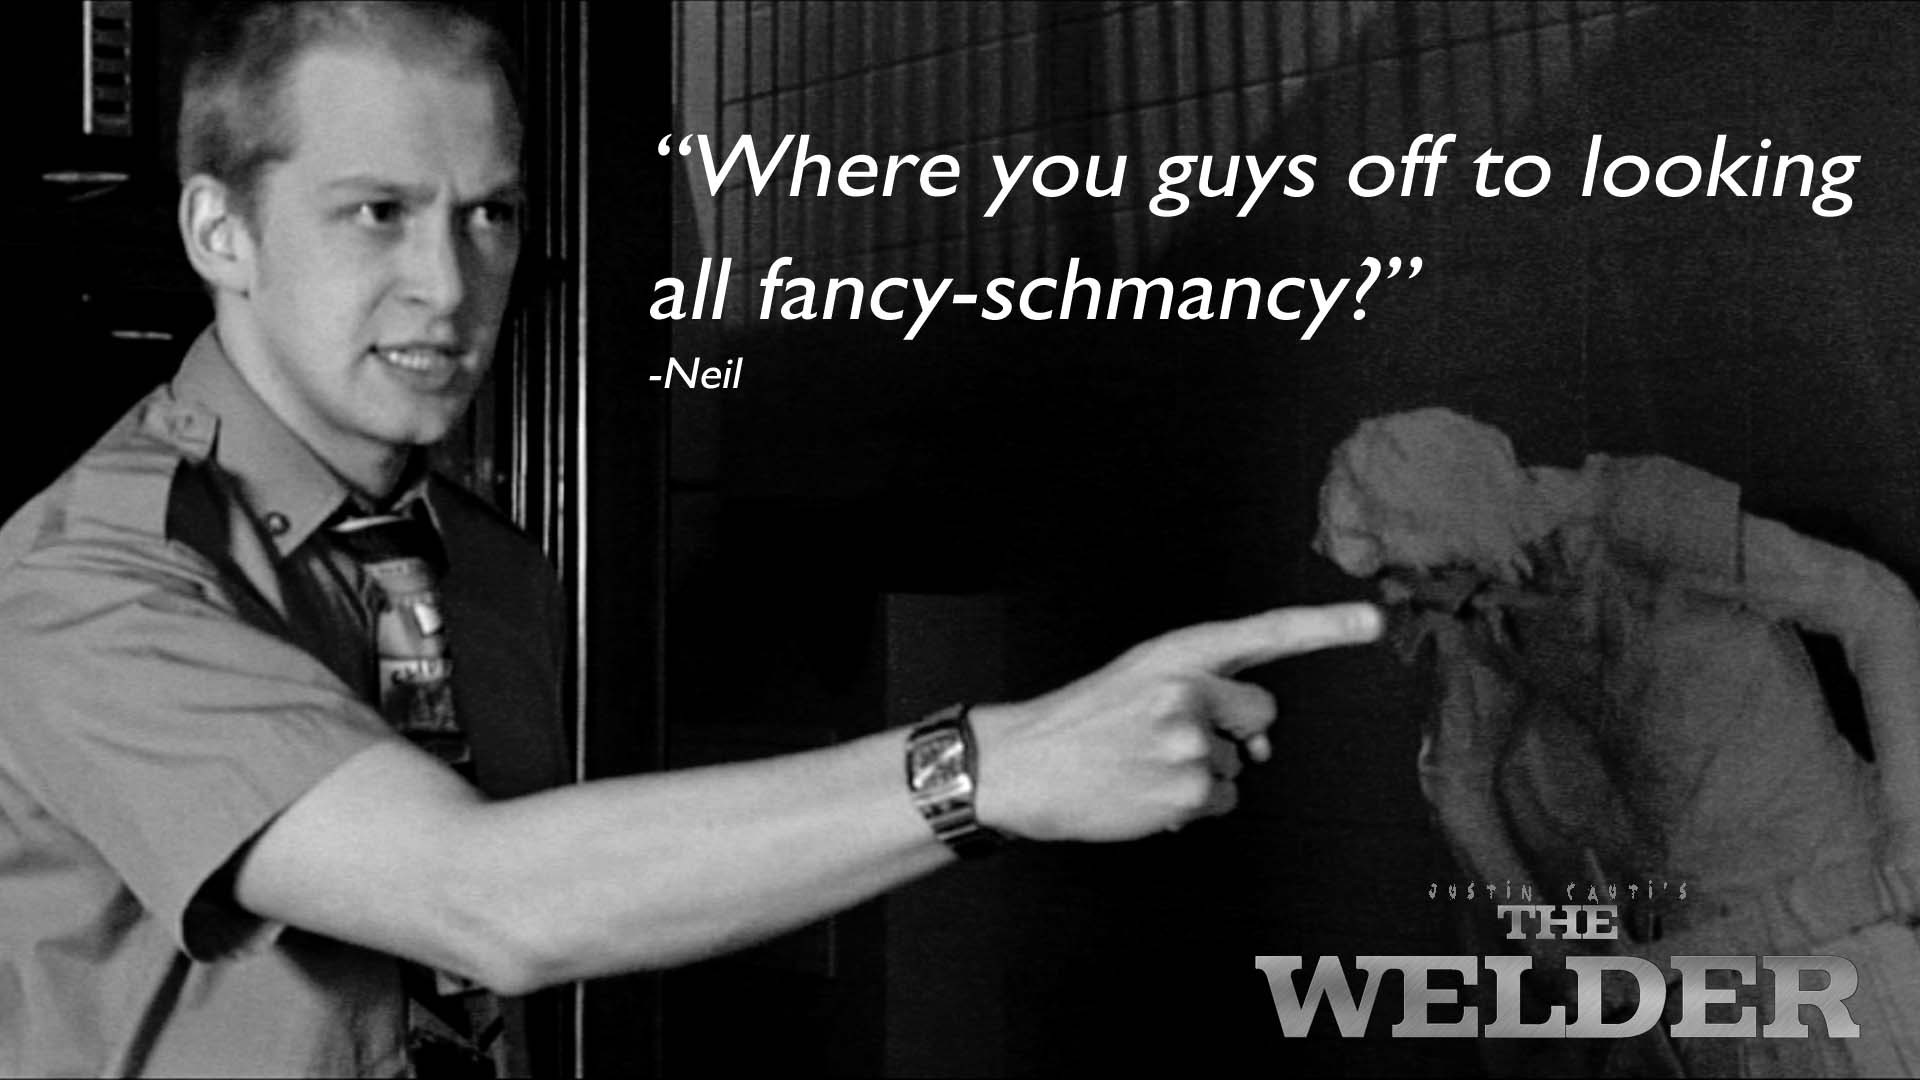 welder neil quote.jpg